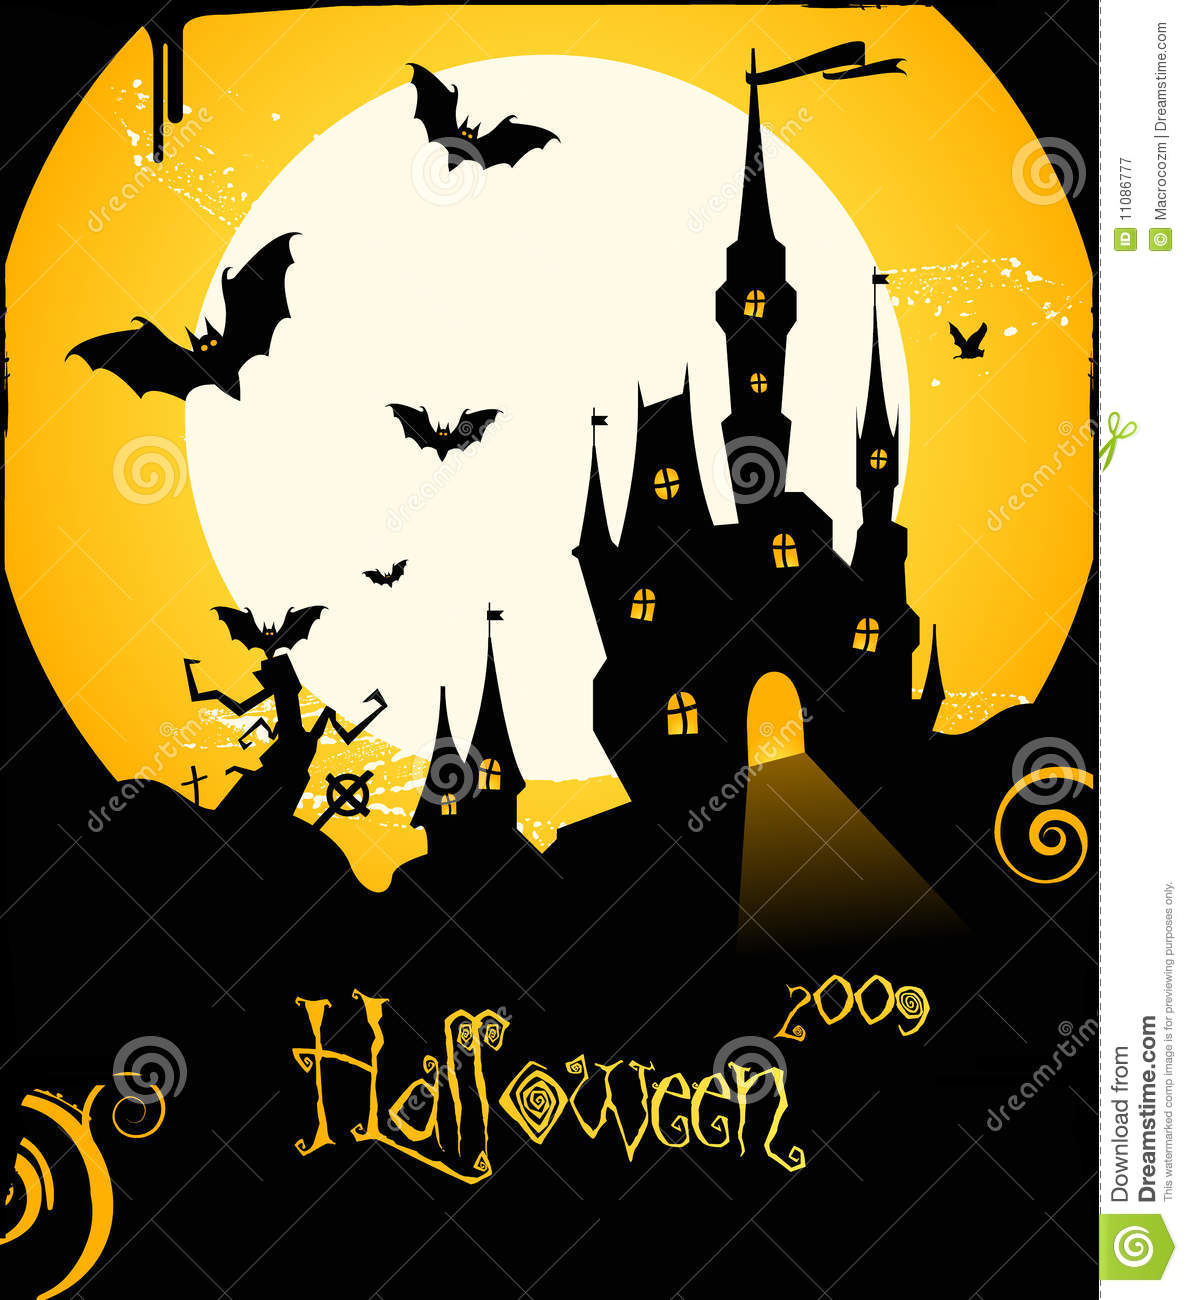 Halloween Flyer Background With Castle And Bats Royalty Free Stock ...